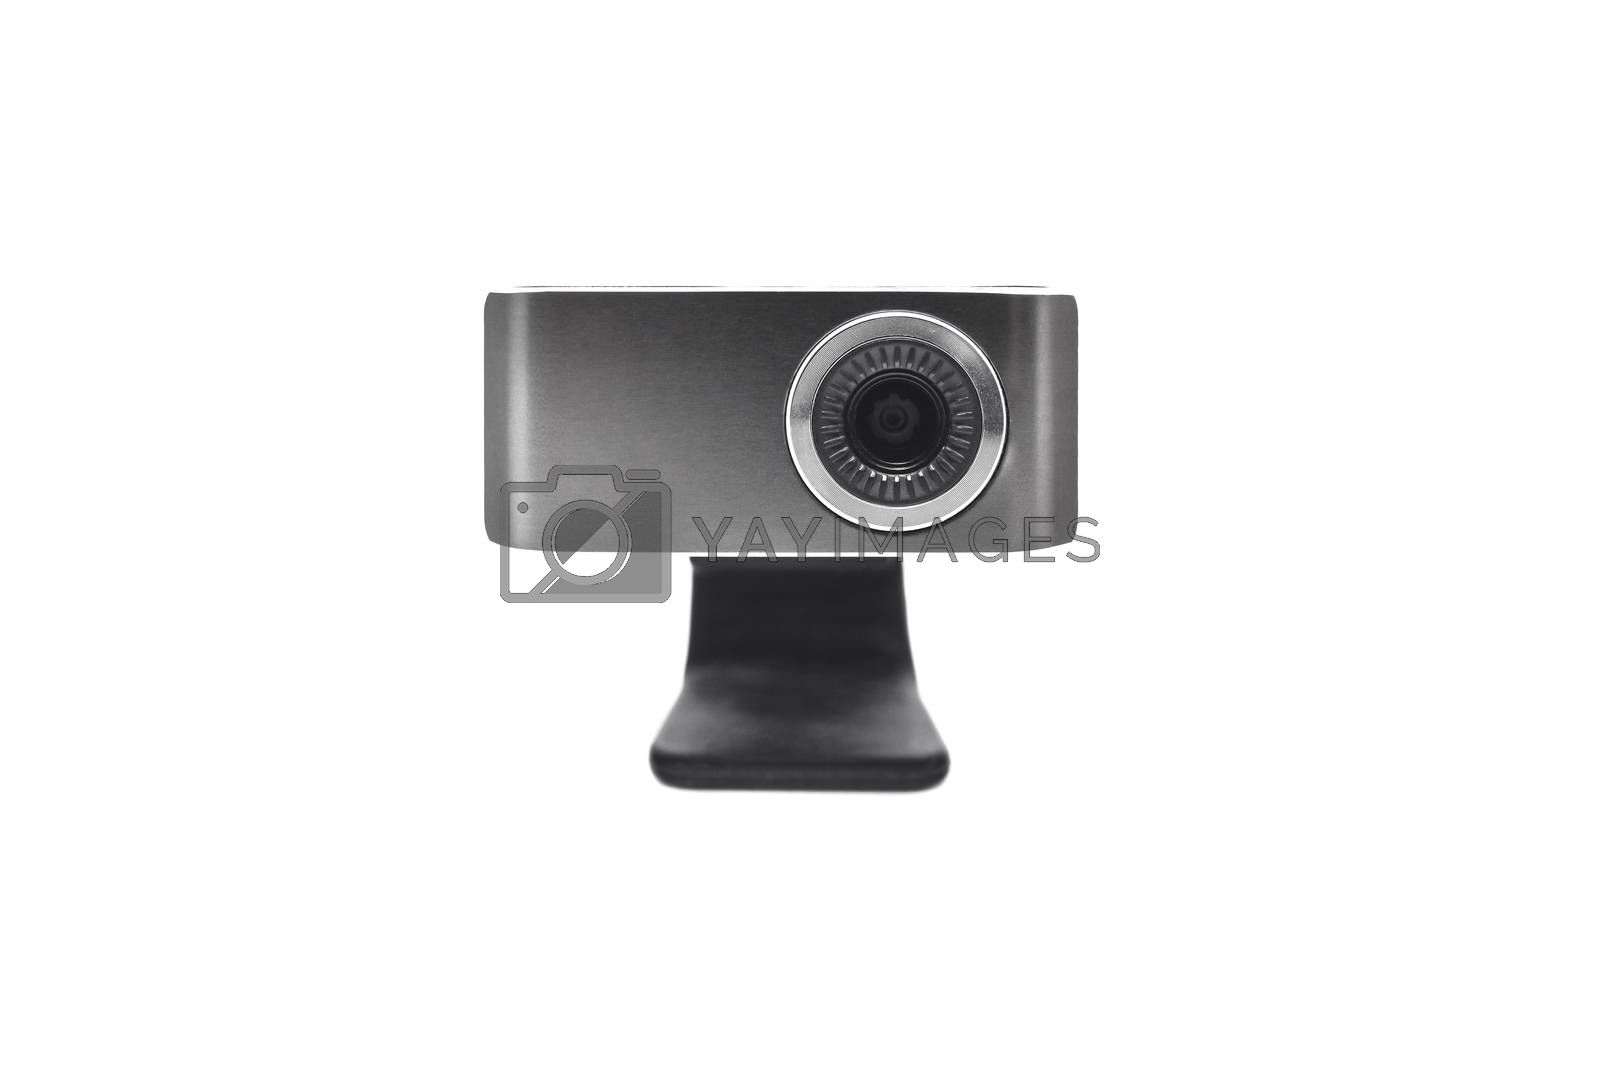 Web camera close-up isolated on a white background by Nickstock